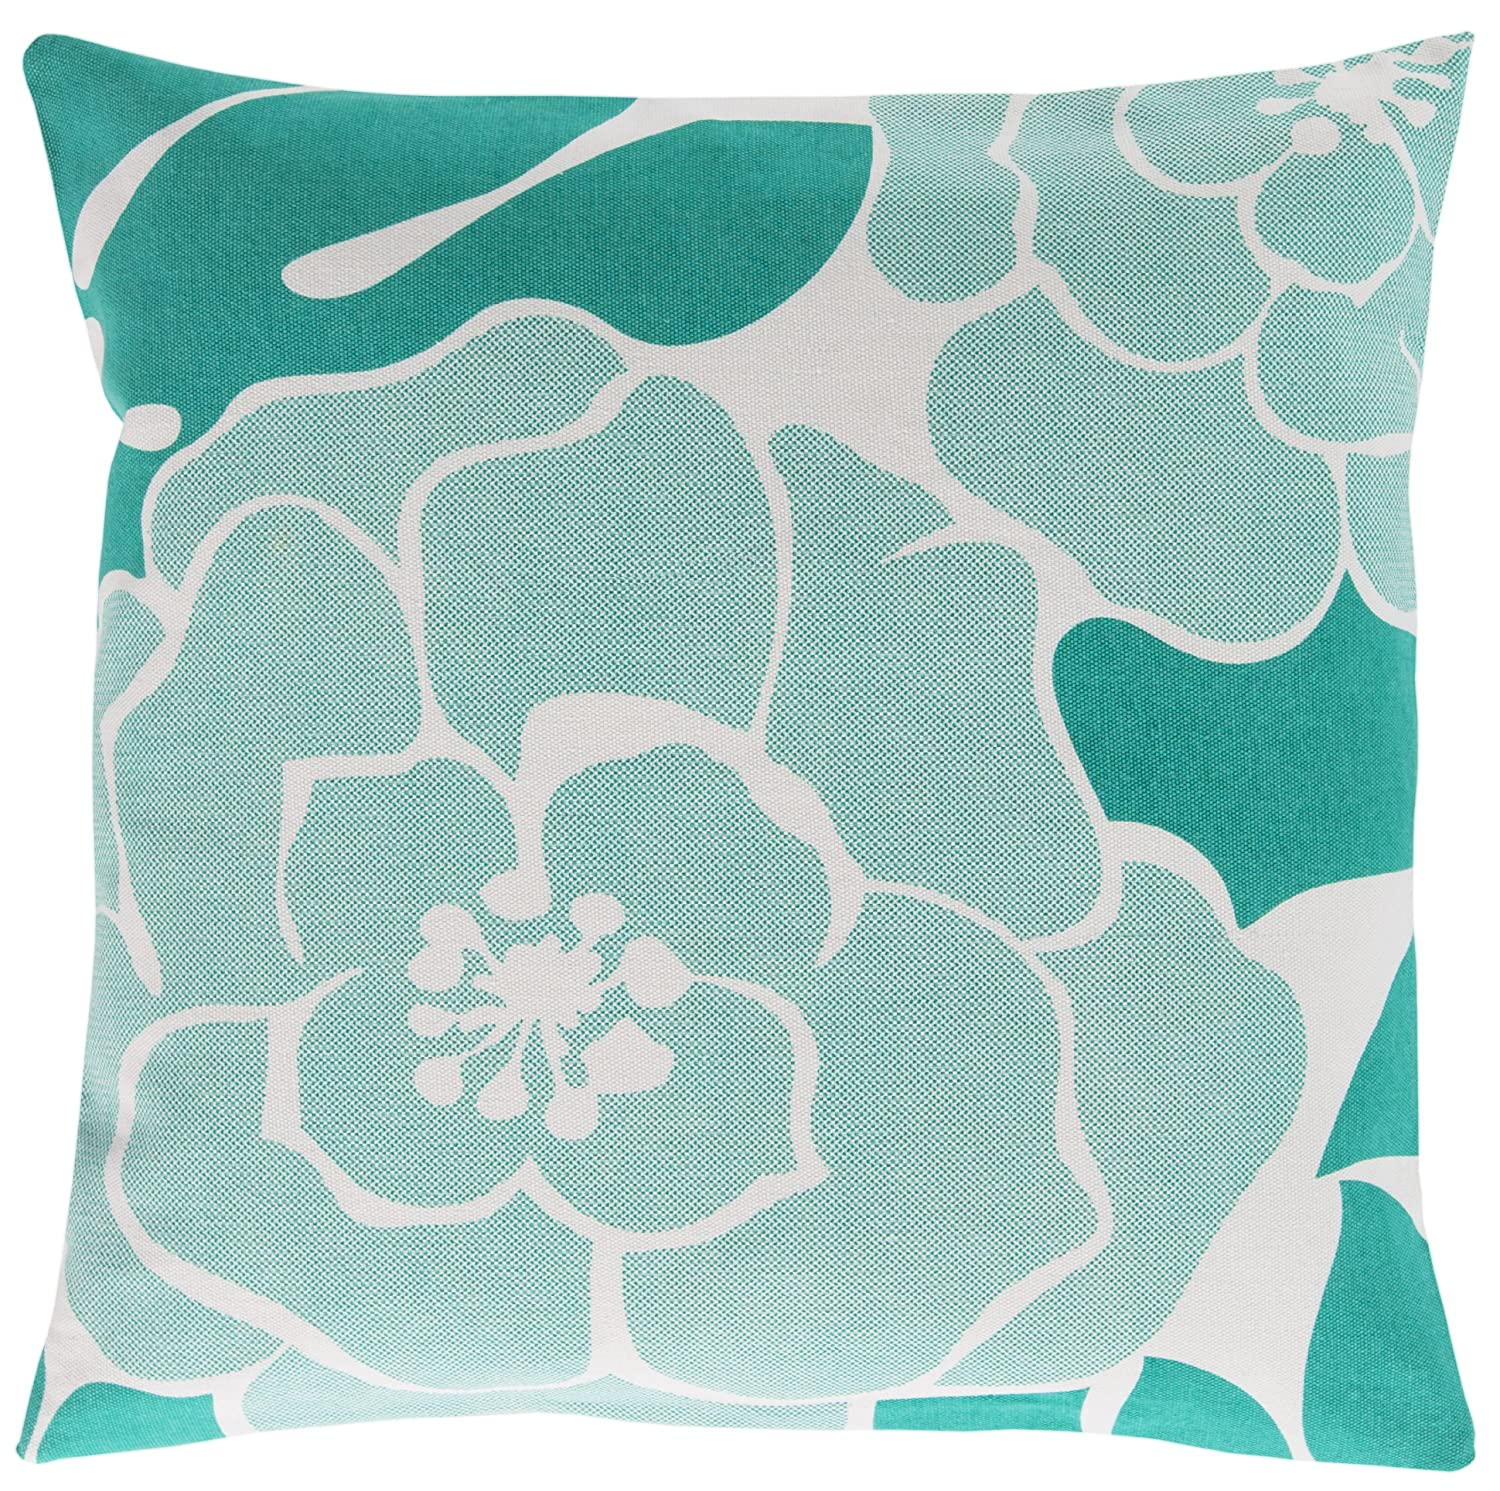 Surya Florence Broadhurst FB008-2020P Synthetic Fill Pillow, 20 by 20-Inch, Teal